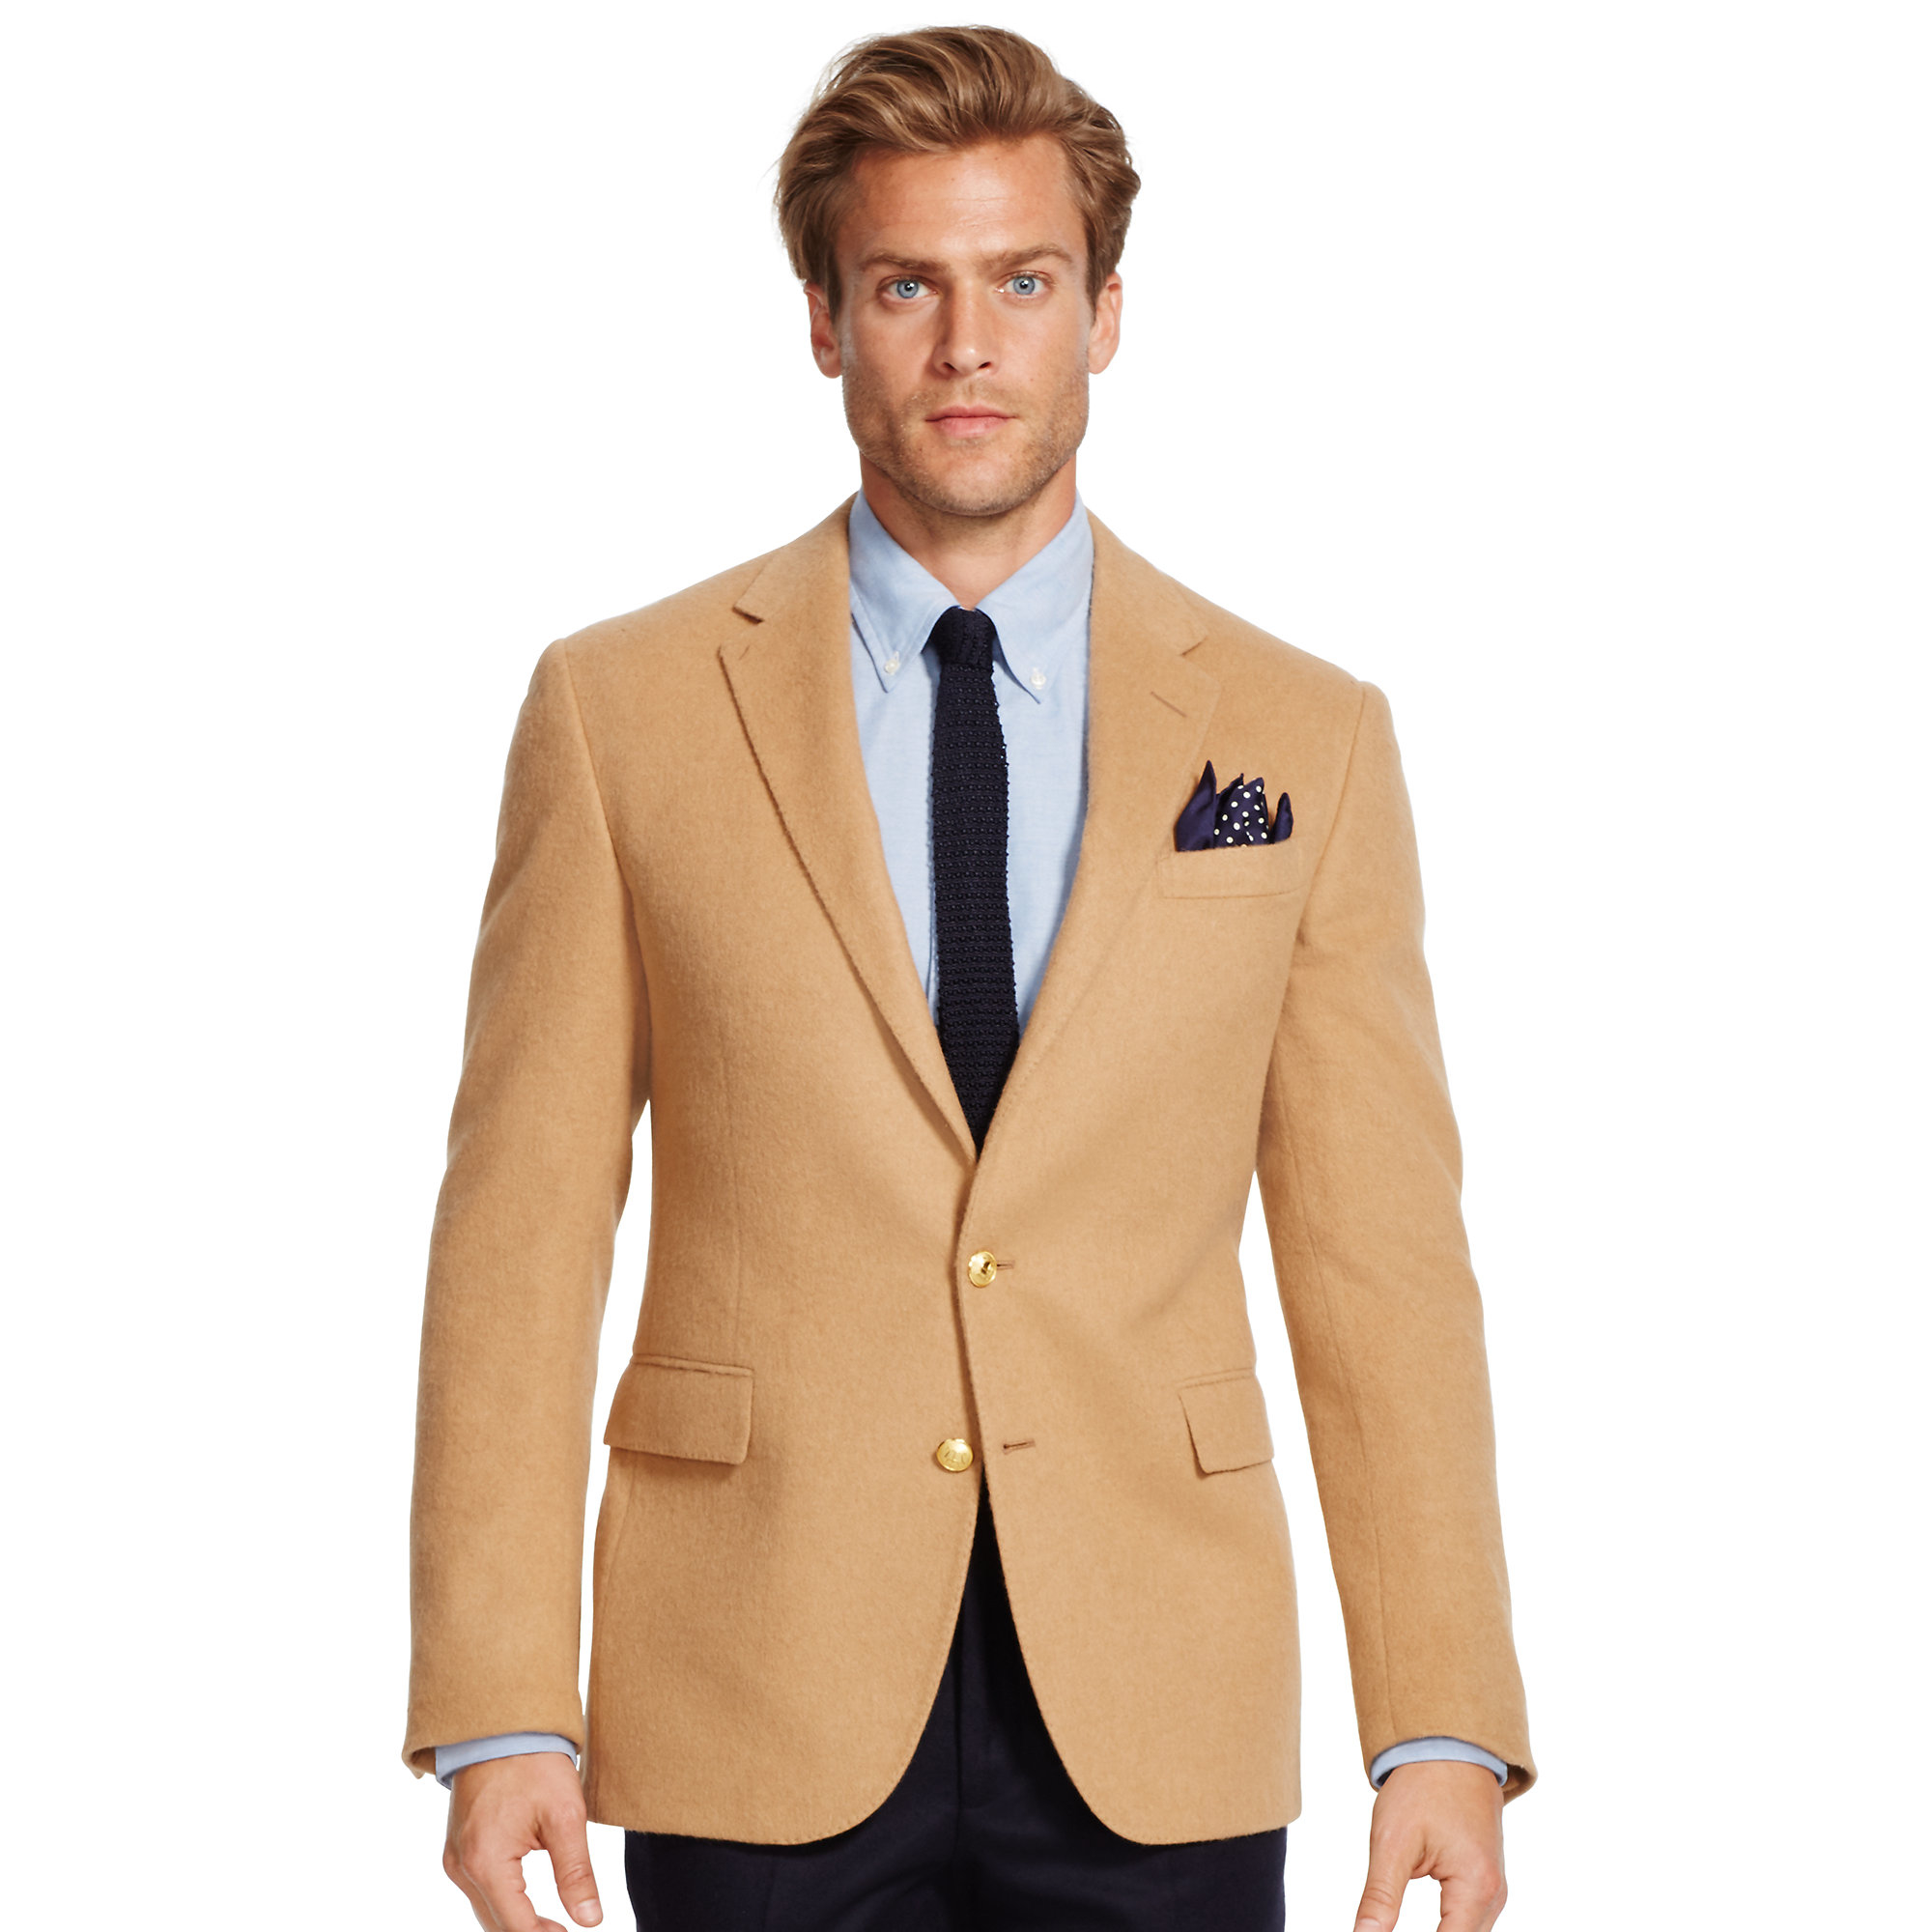 Polo ralph lauren Polo I Camel Hair Sport Coat in Natural for Men